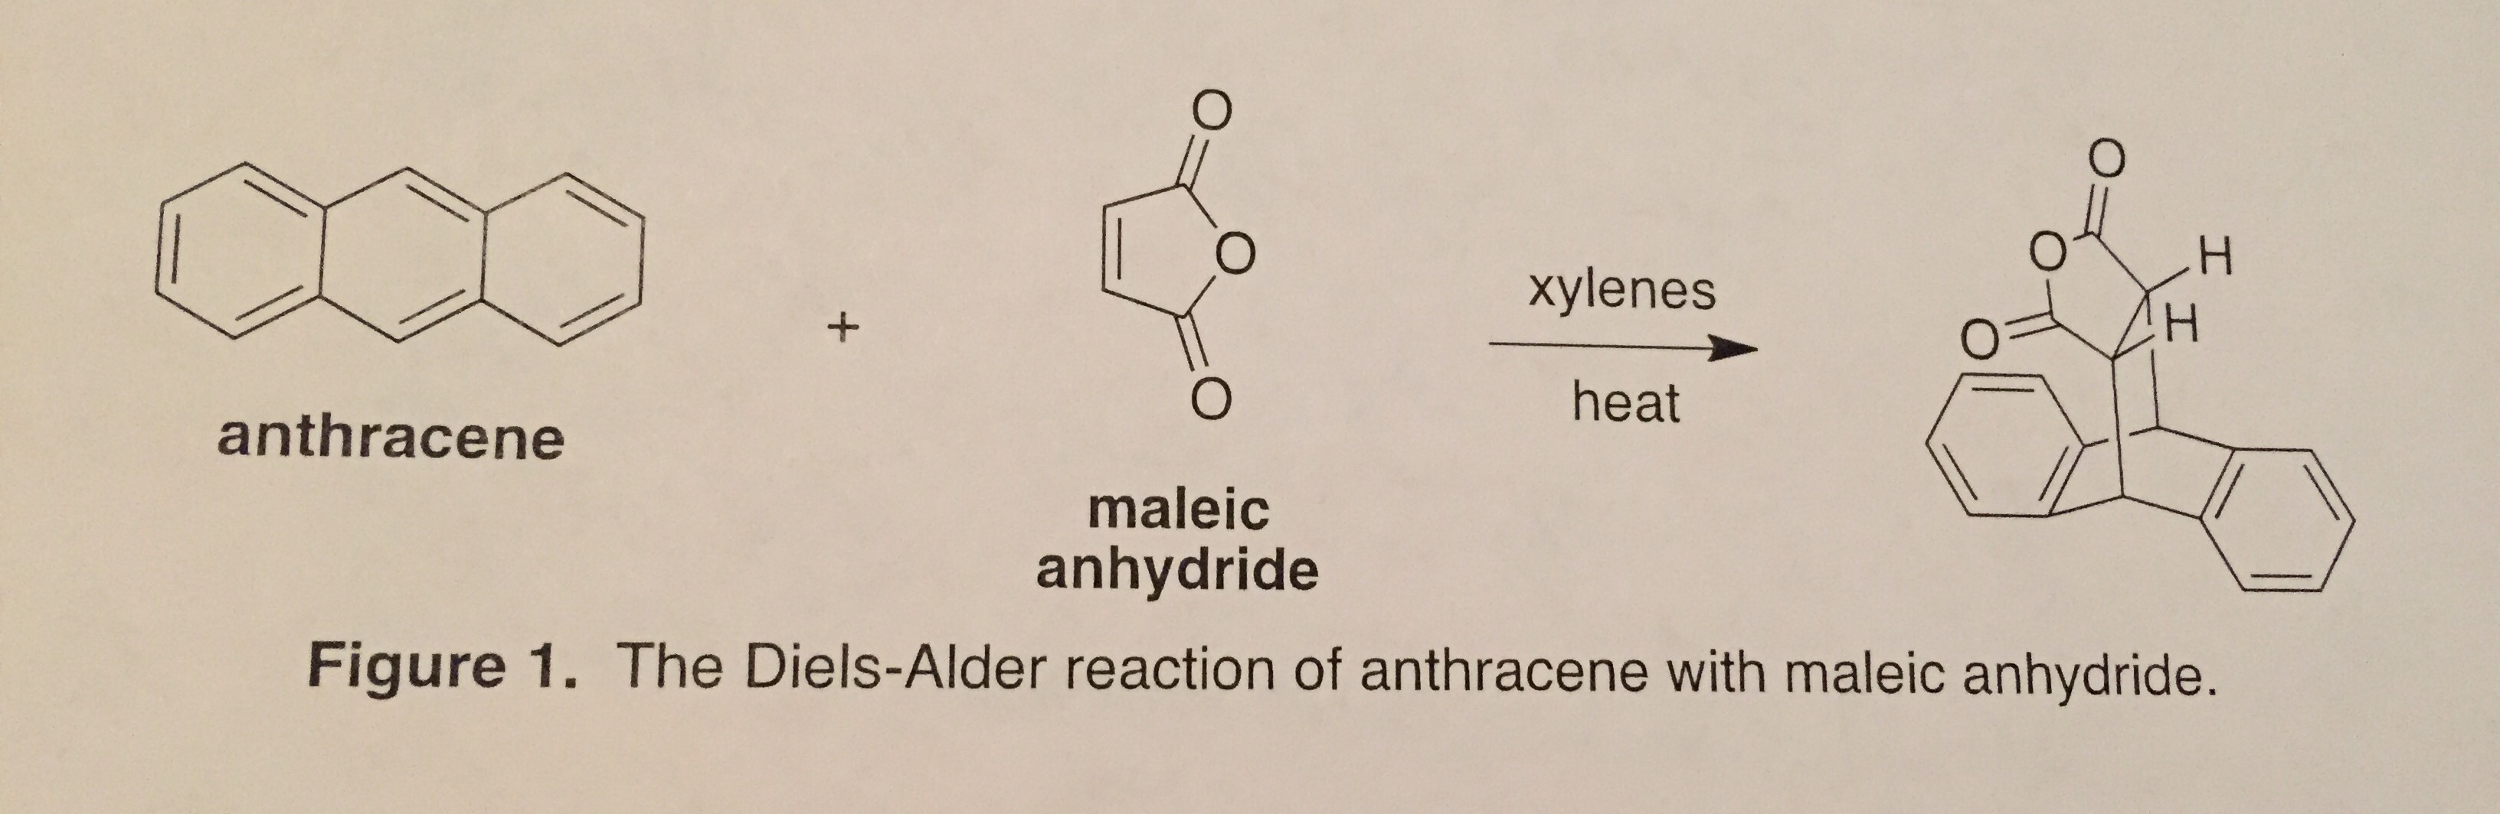 the diels alder reaction of anthracene with maleic anhydride